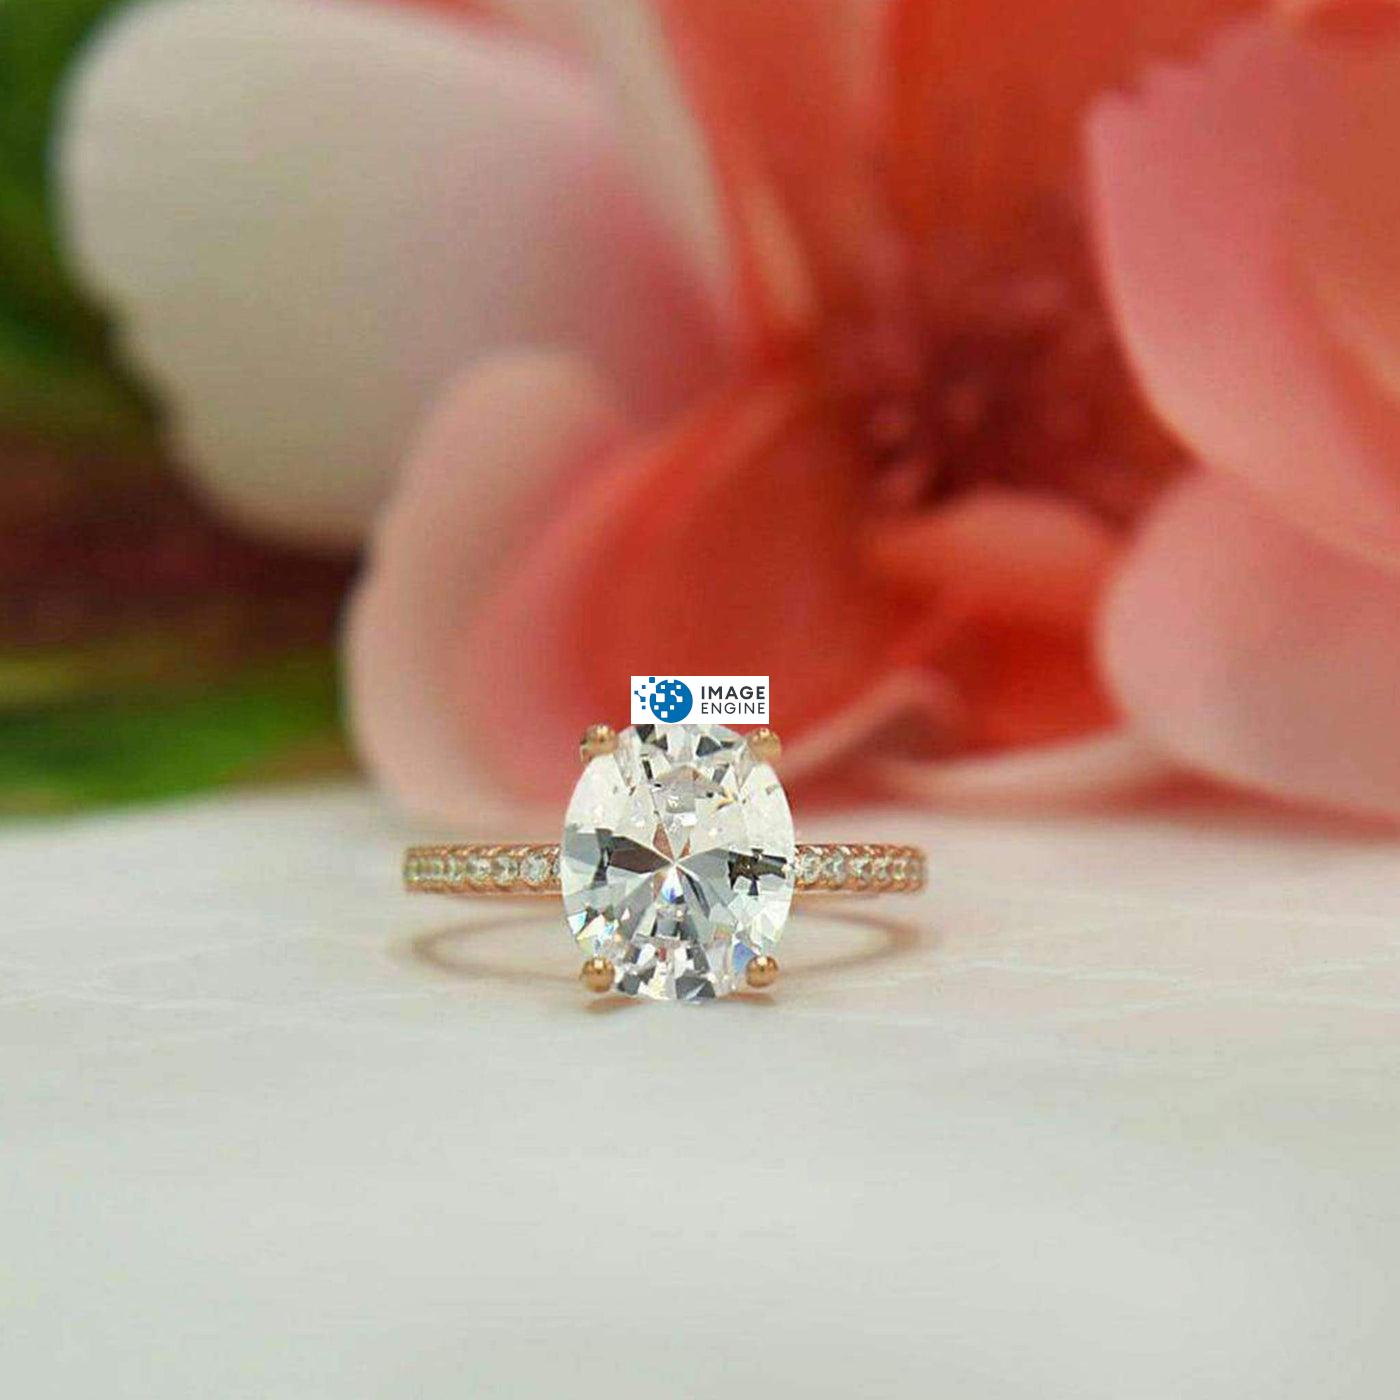 Cara Zirconia Ring - on Flower Background - 18K Yellow Gold Vermeil